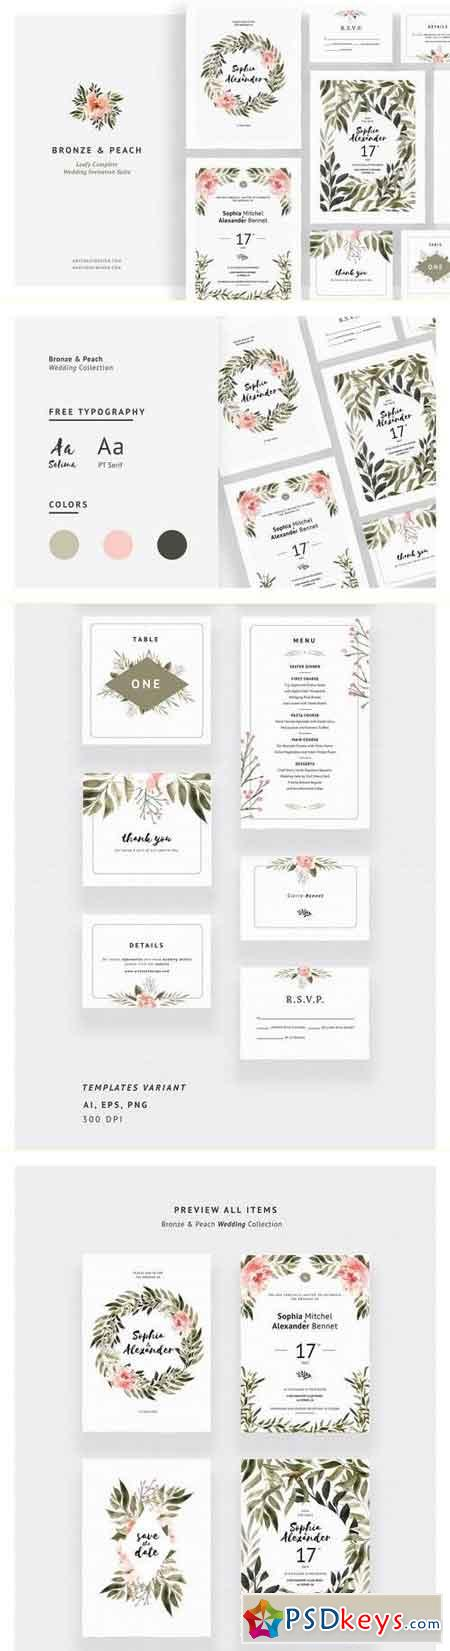 Bronze & Peach Wedding Invitations